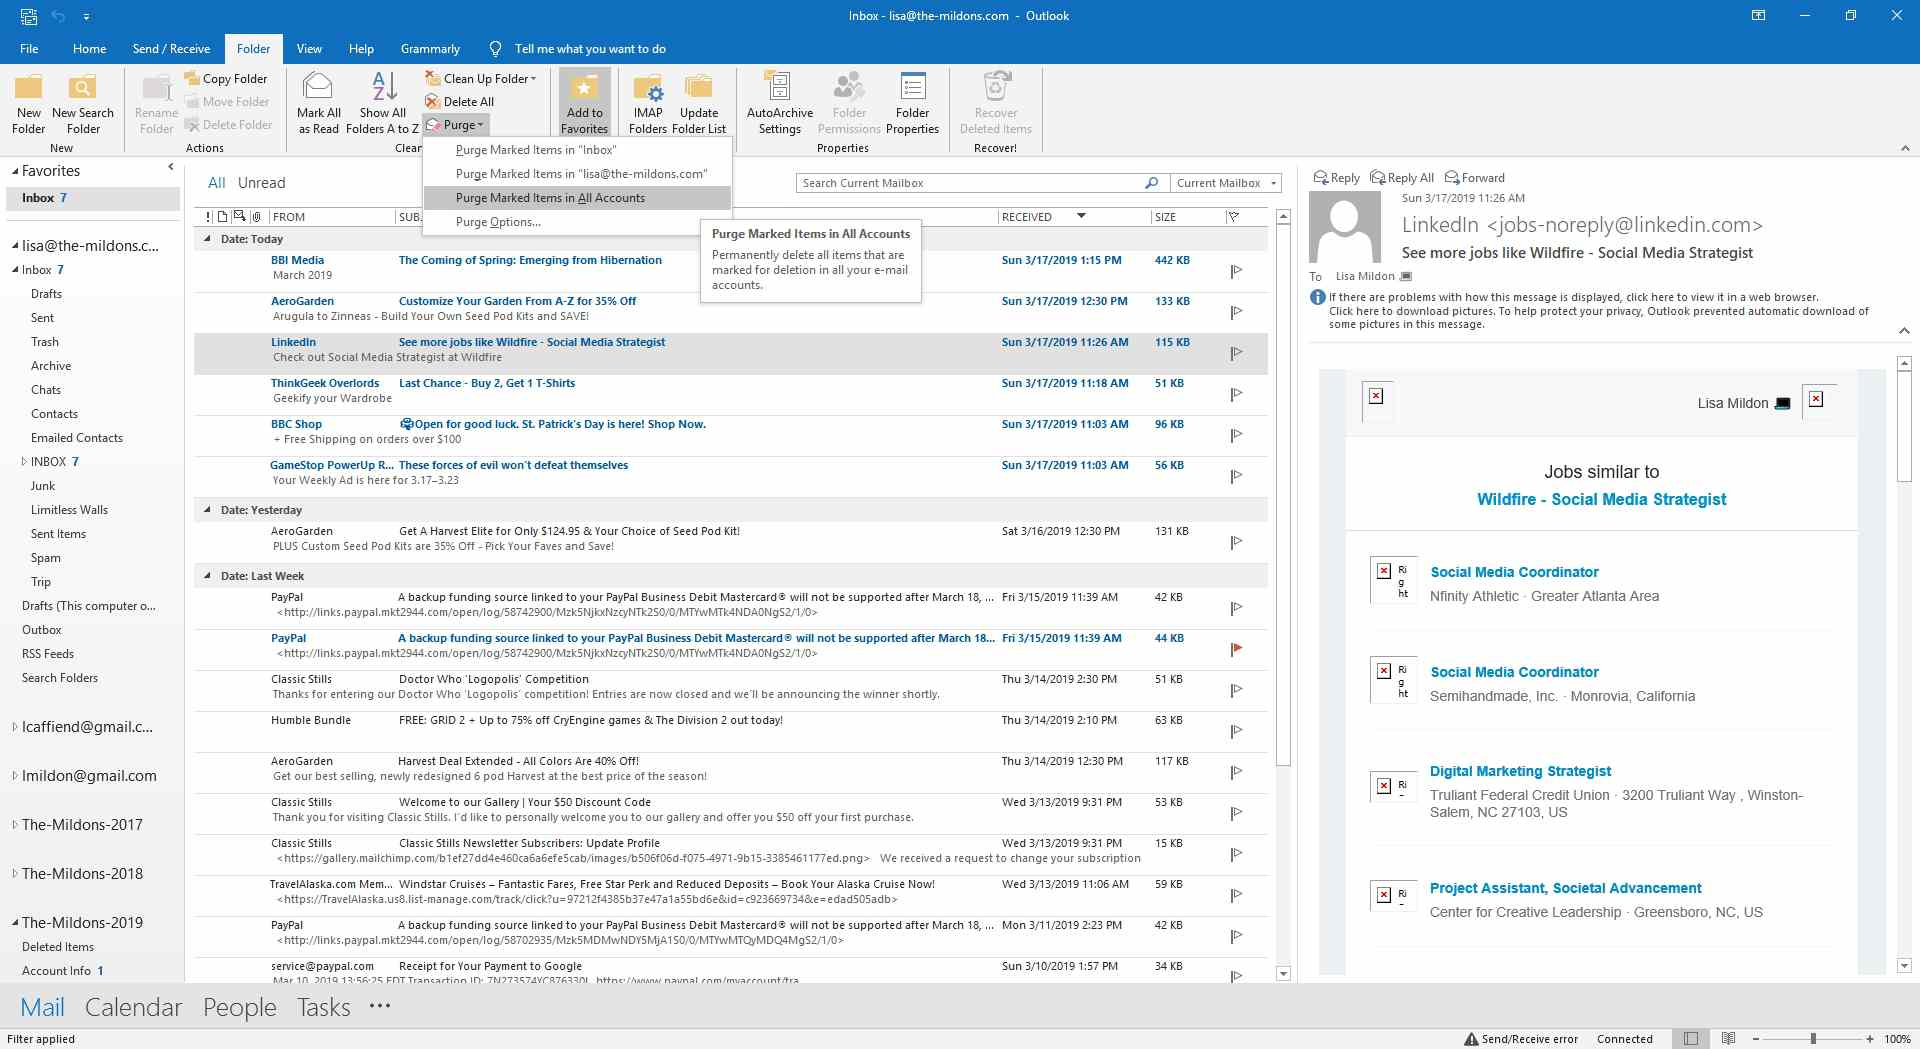 Viewing purging options within Outlook.